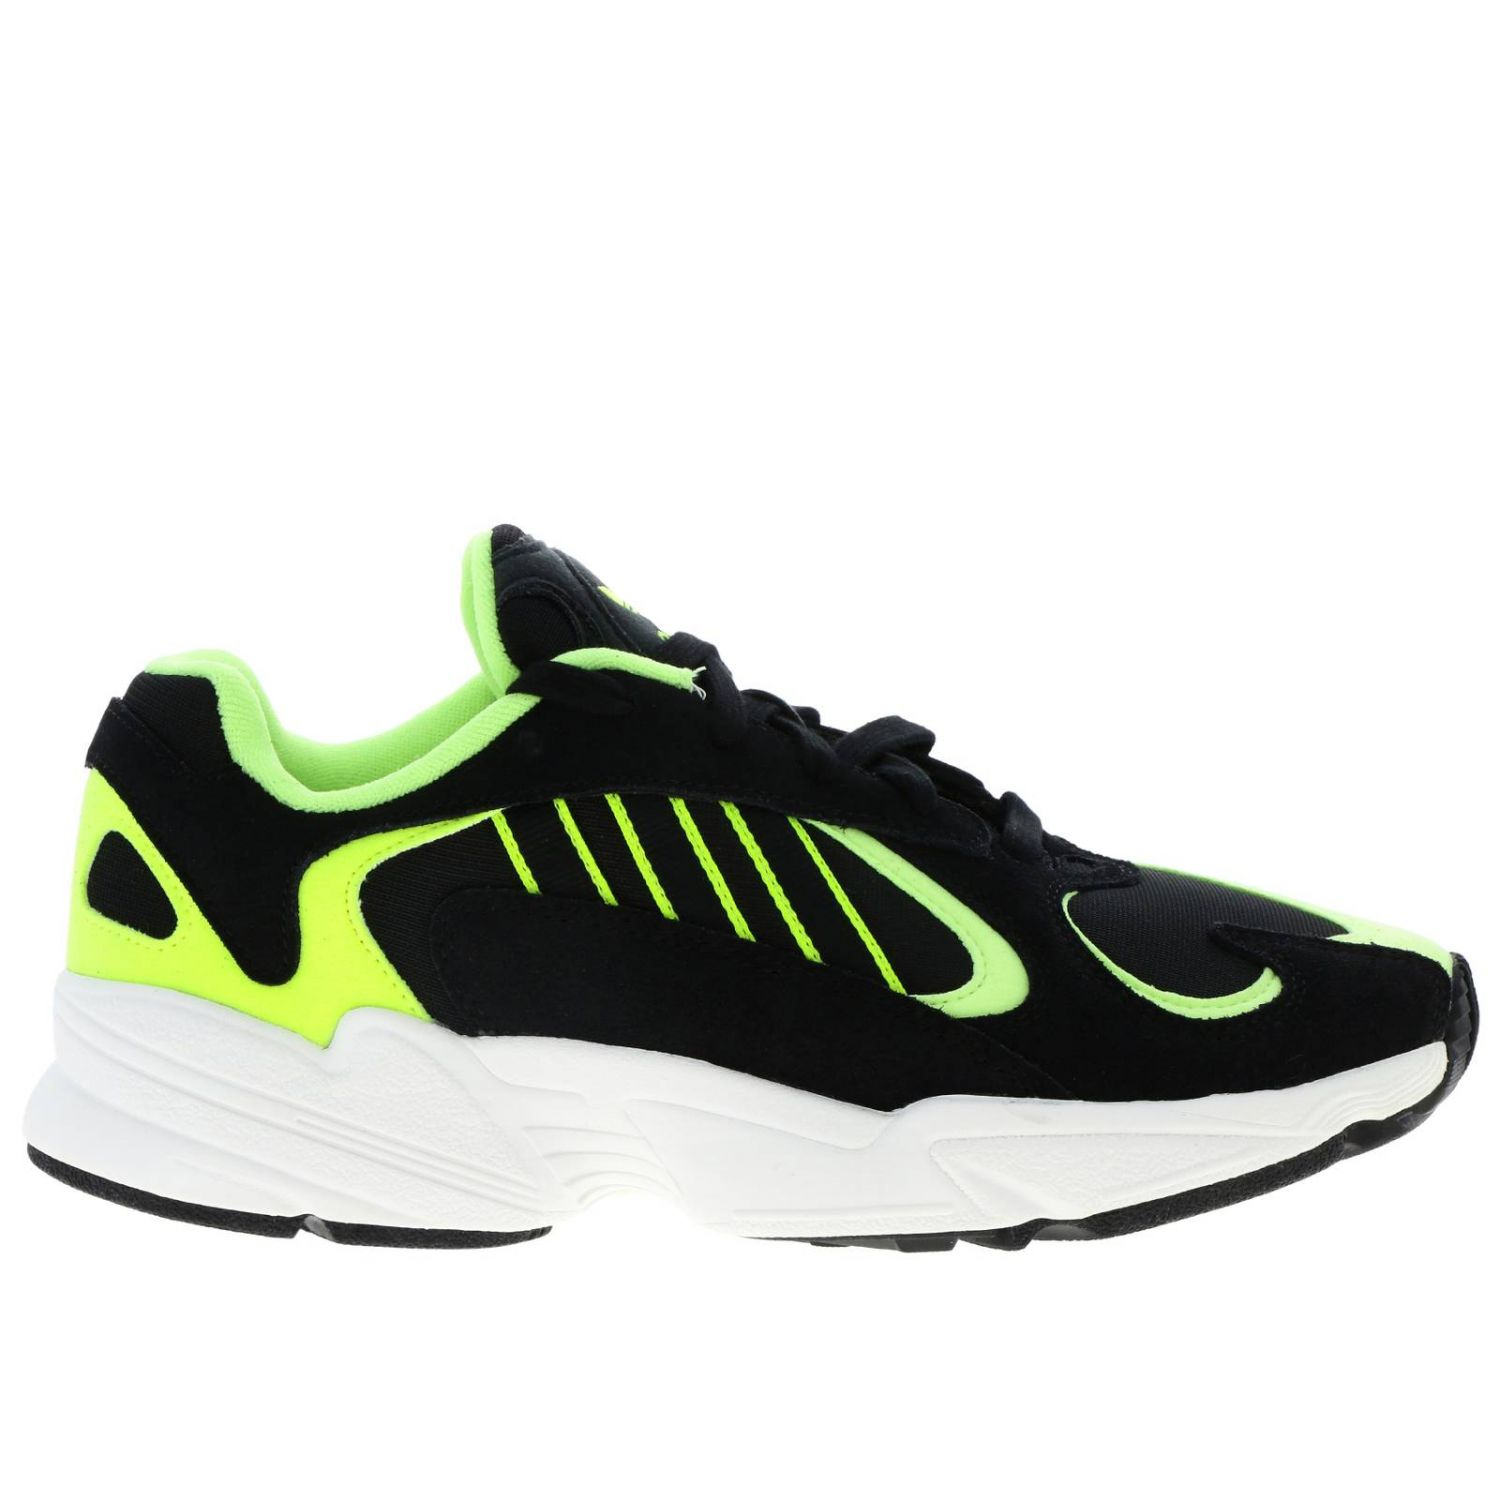 Sneakers Adidas Originals: Sneakers Yung-1 Adidas Originals in mesh fluo camoscio e rete con suola in gomma nero 1